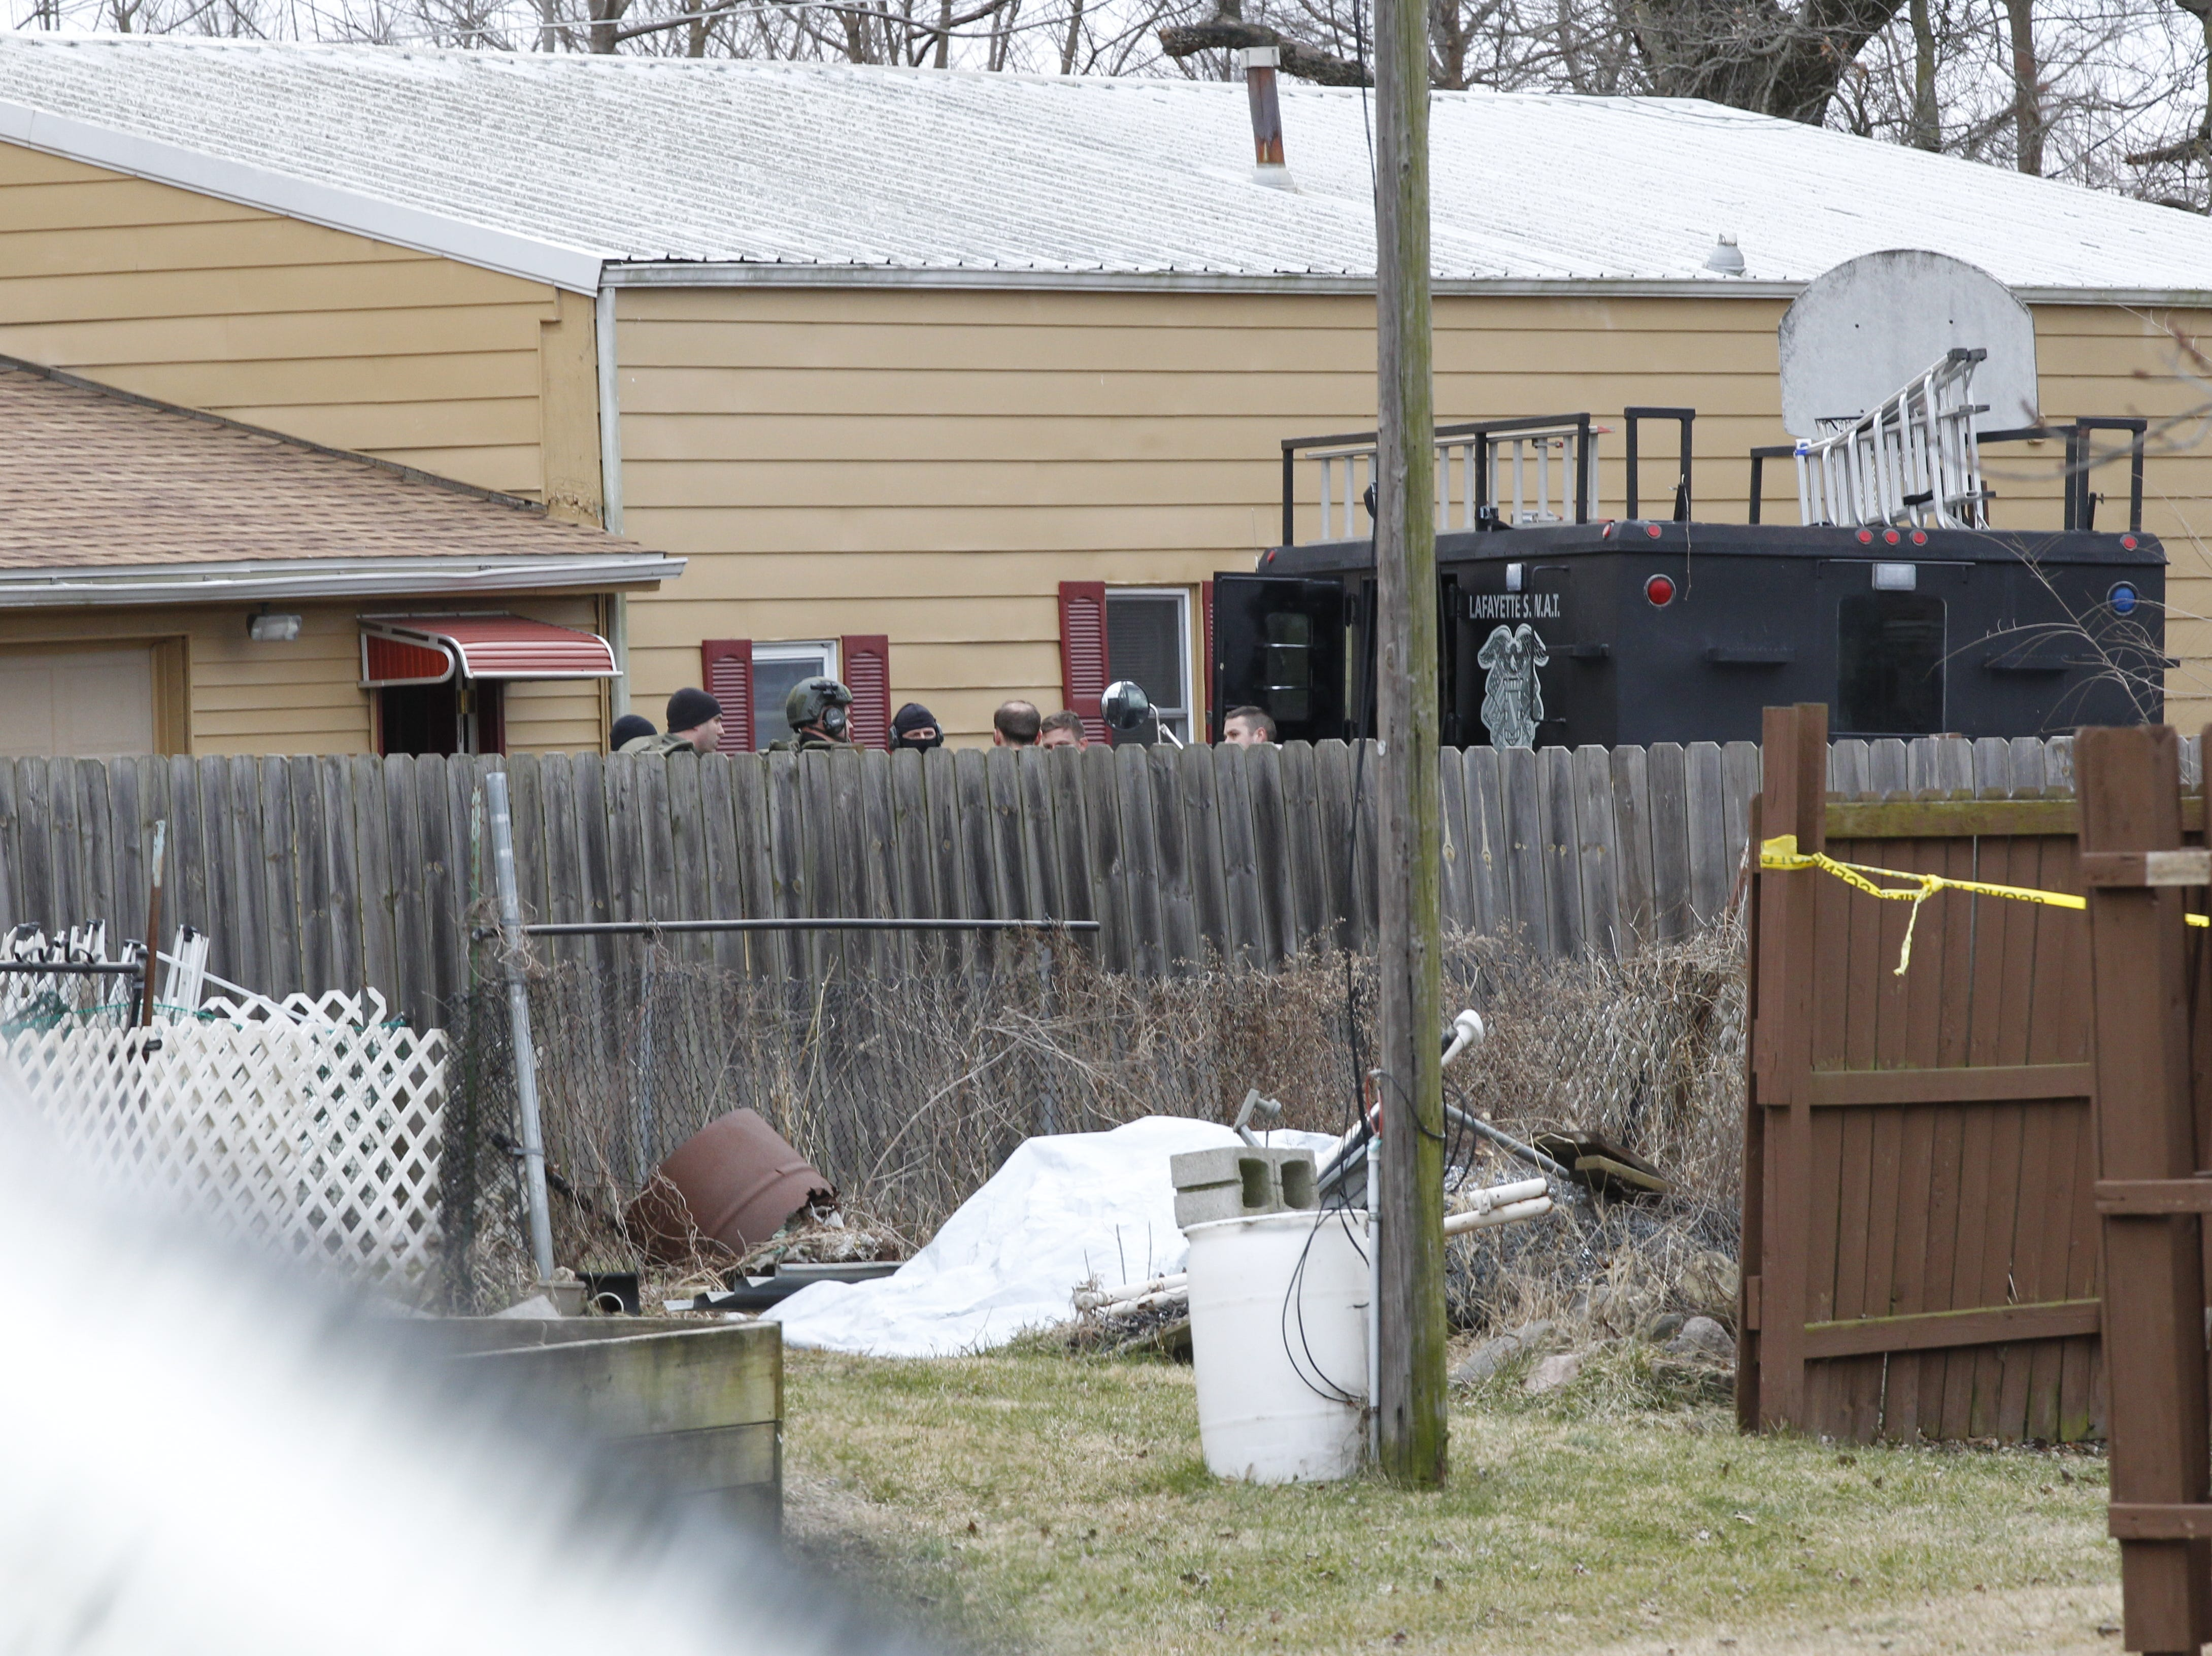 Lafayette police, including members of the SWAT team, converged in the 2500 block of Derbyshire Court Monday afternoon after Dustin Borders barricaded himself inside a house.